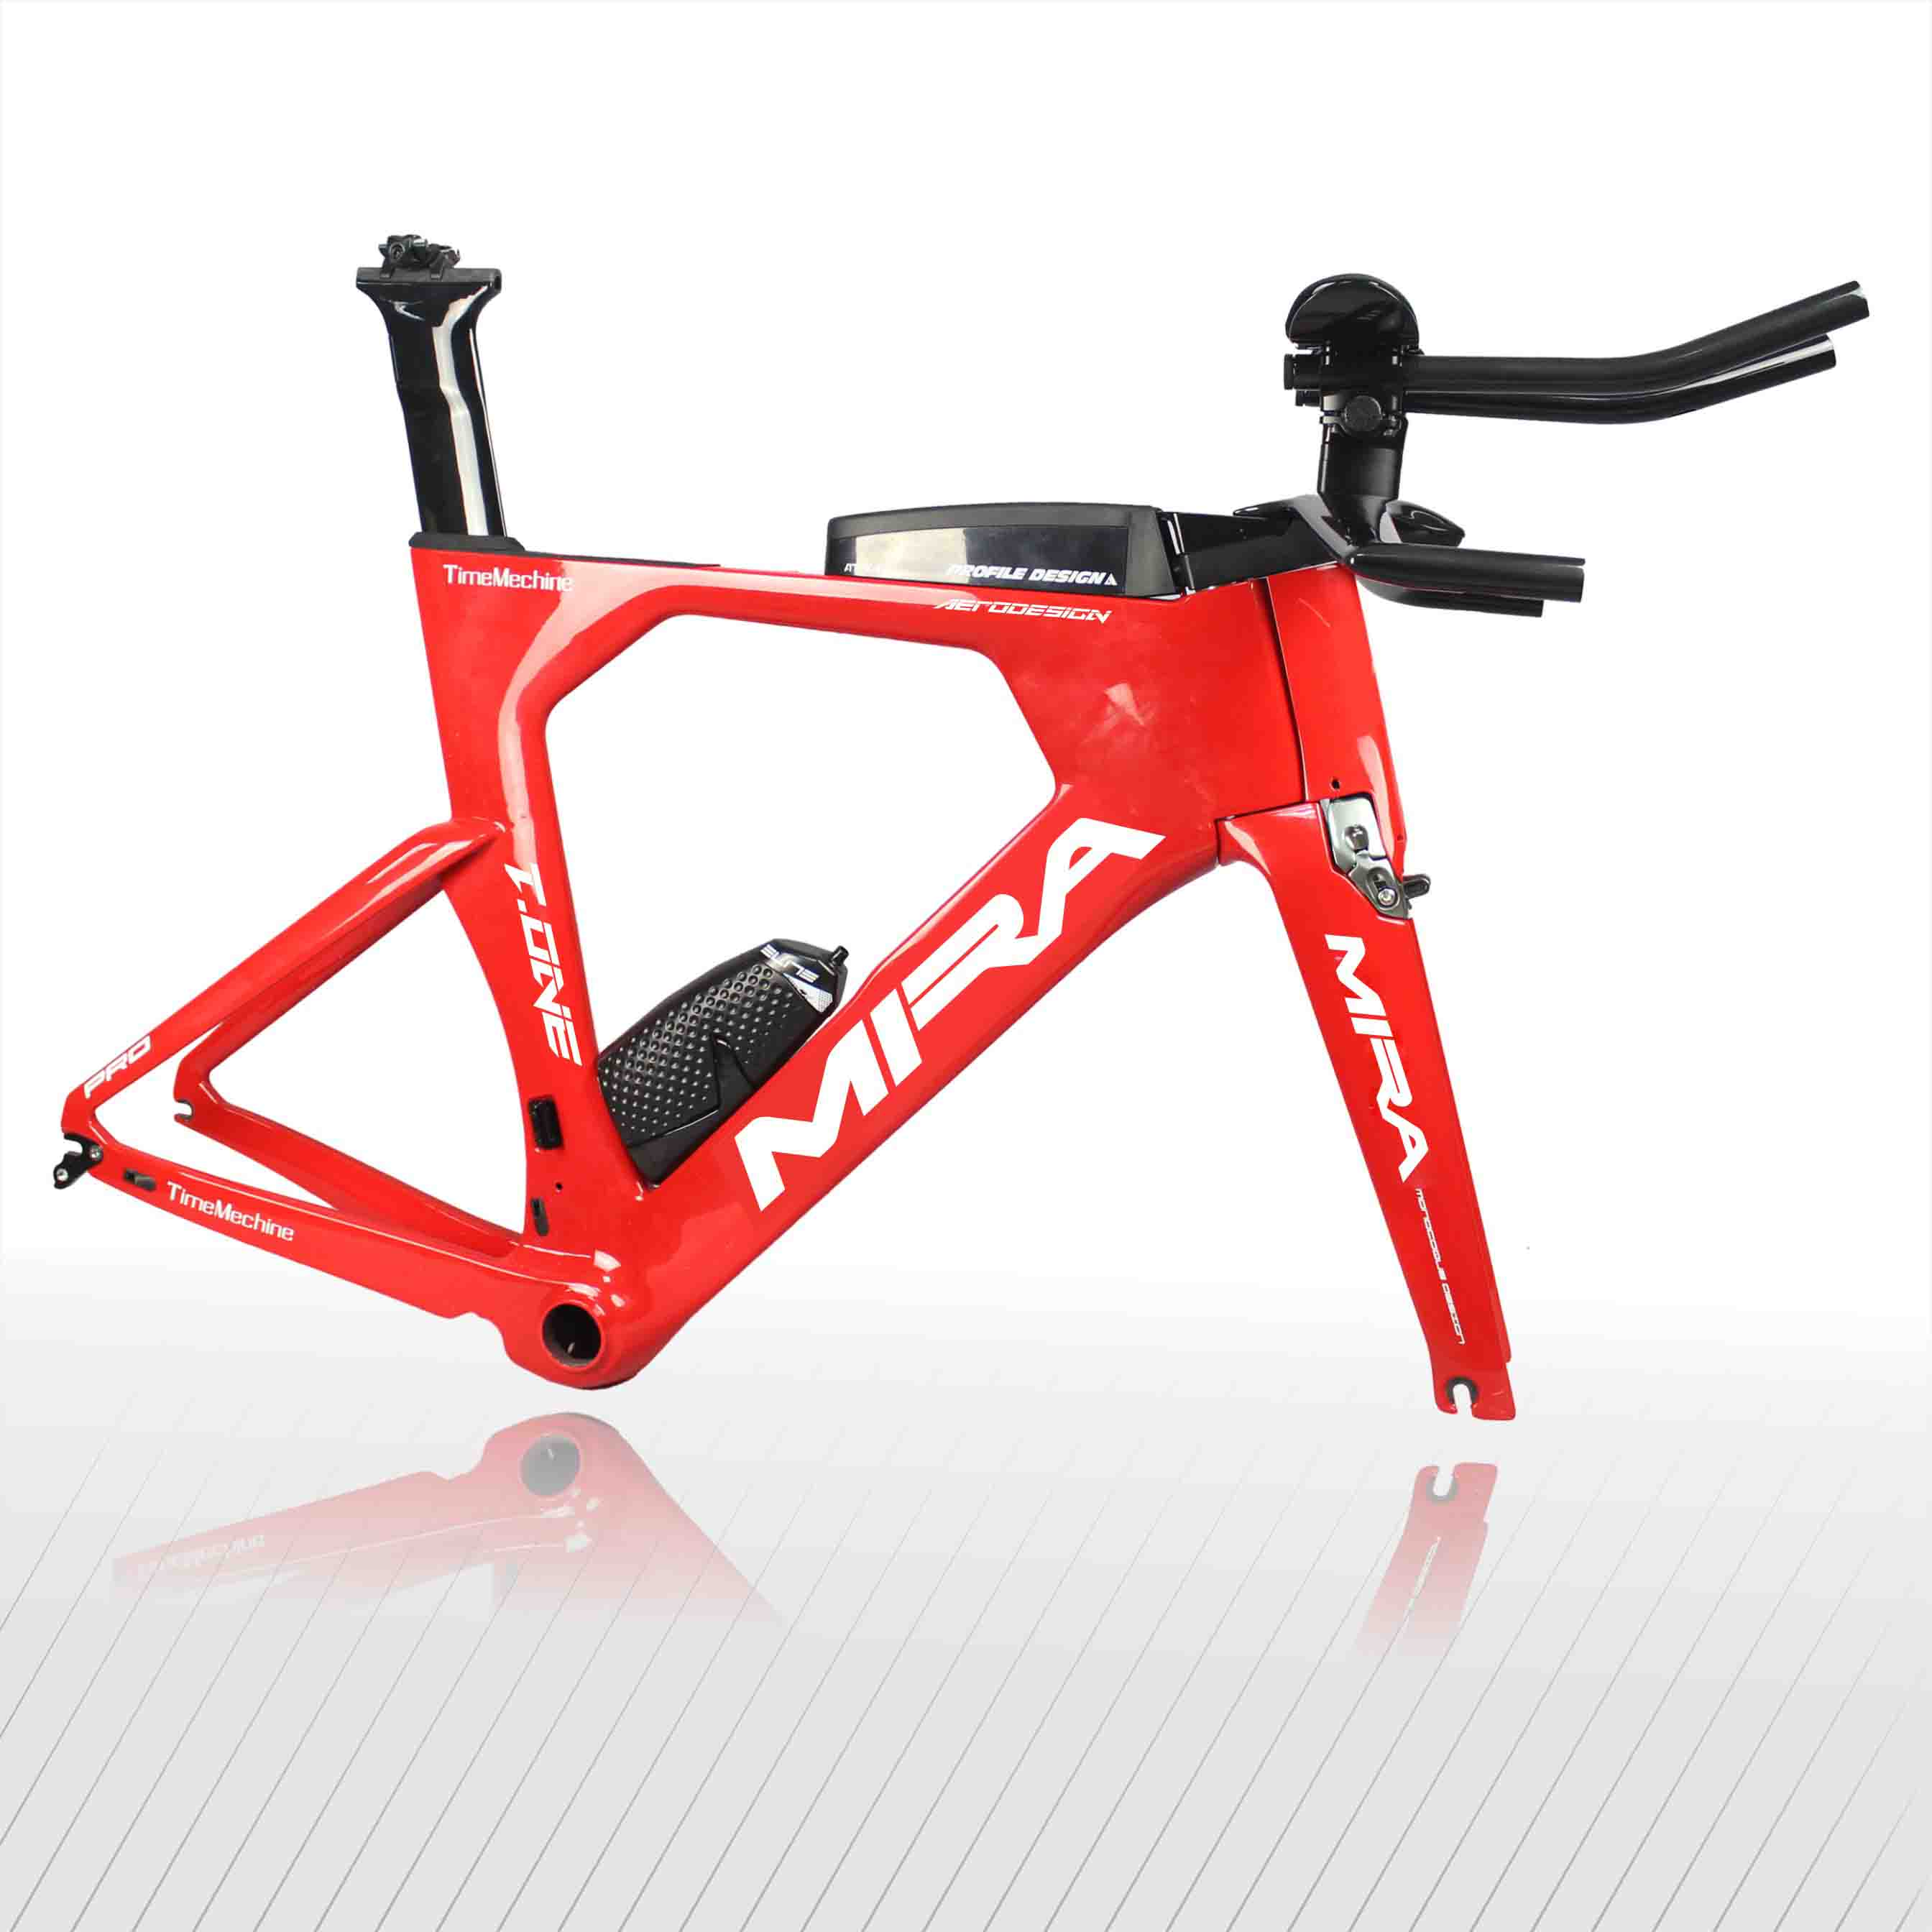 Miracle New Design Full Carbon Fiber TT Bike Frame,warranty 2 Years High Quality  Carbon Triathlon Bicycle Frame